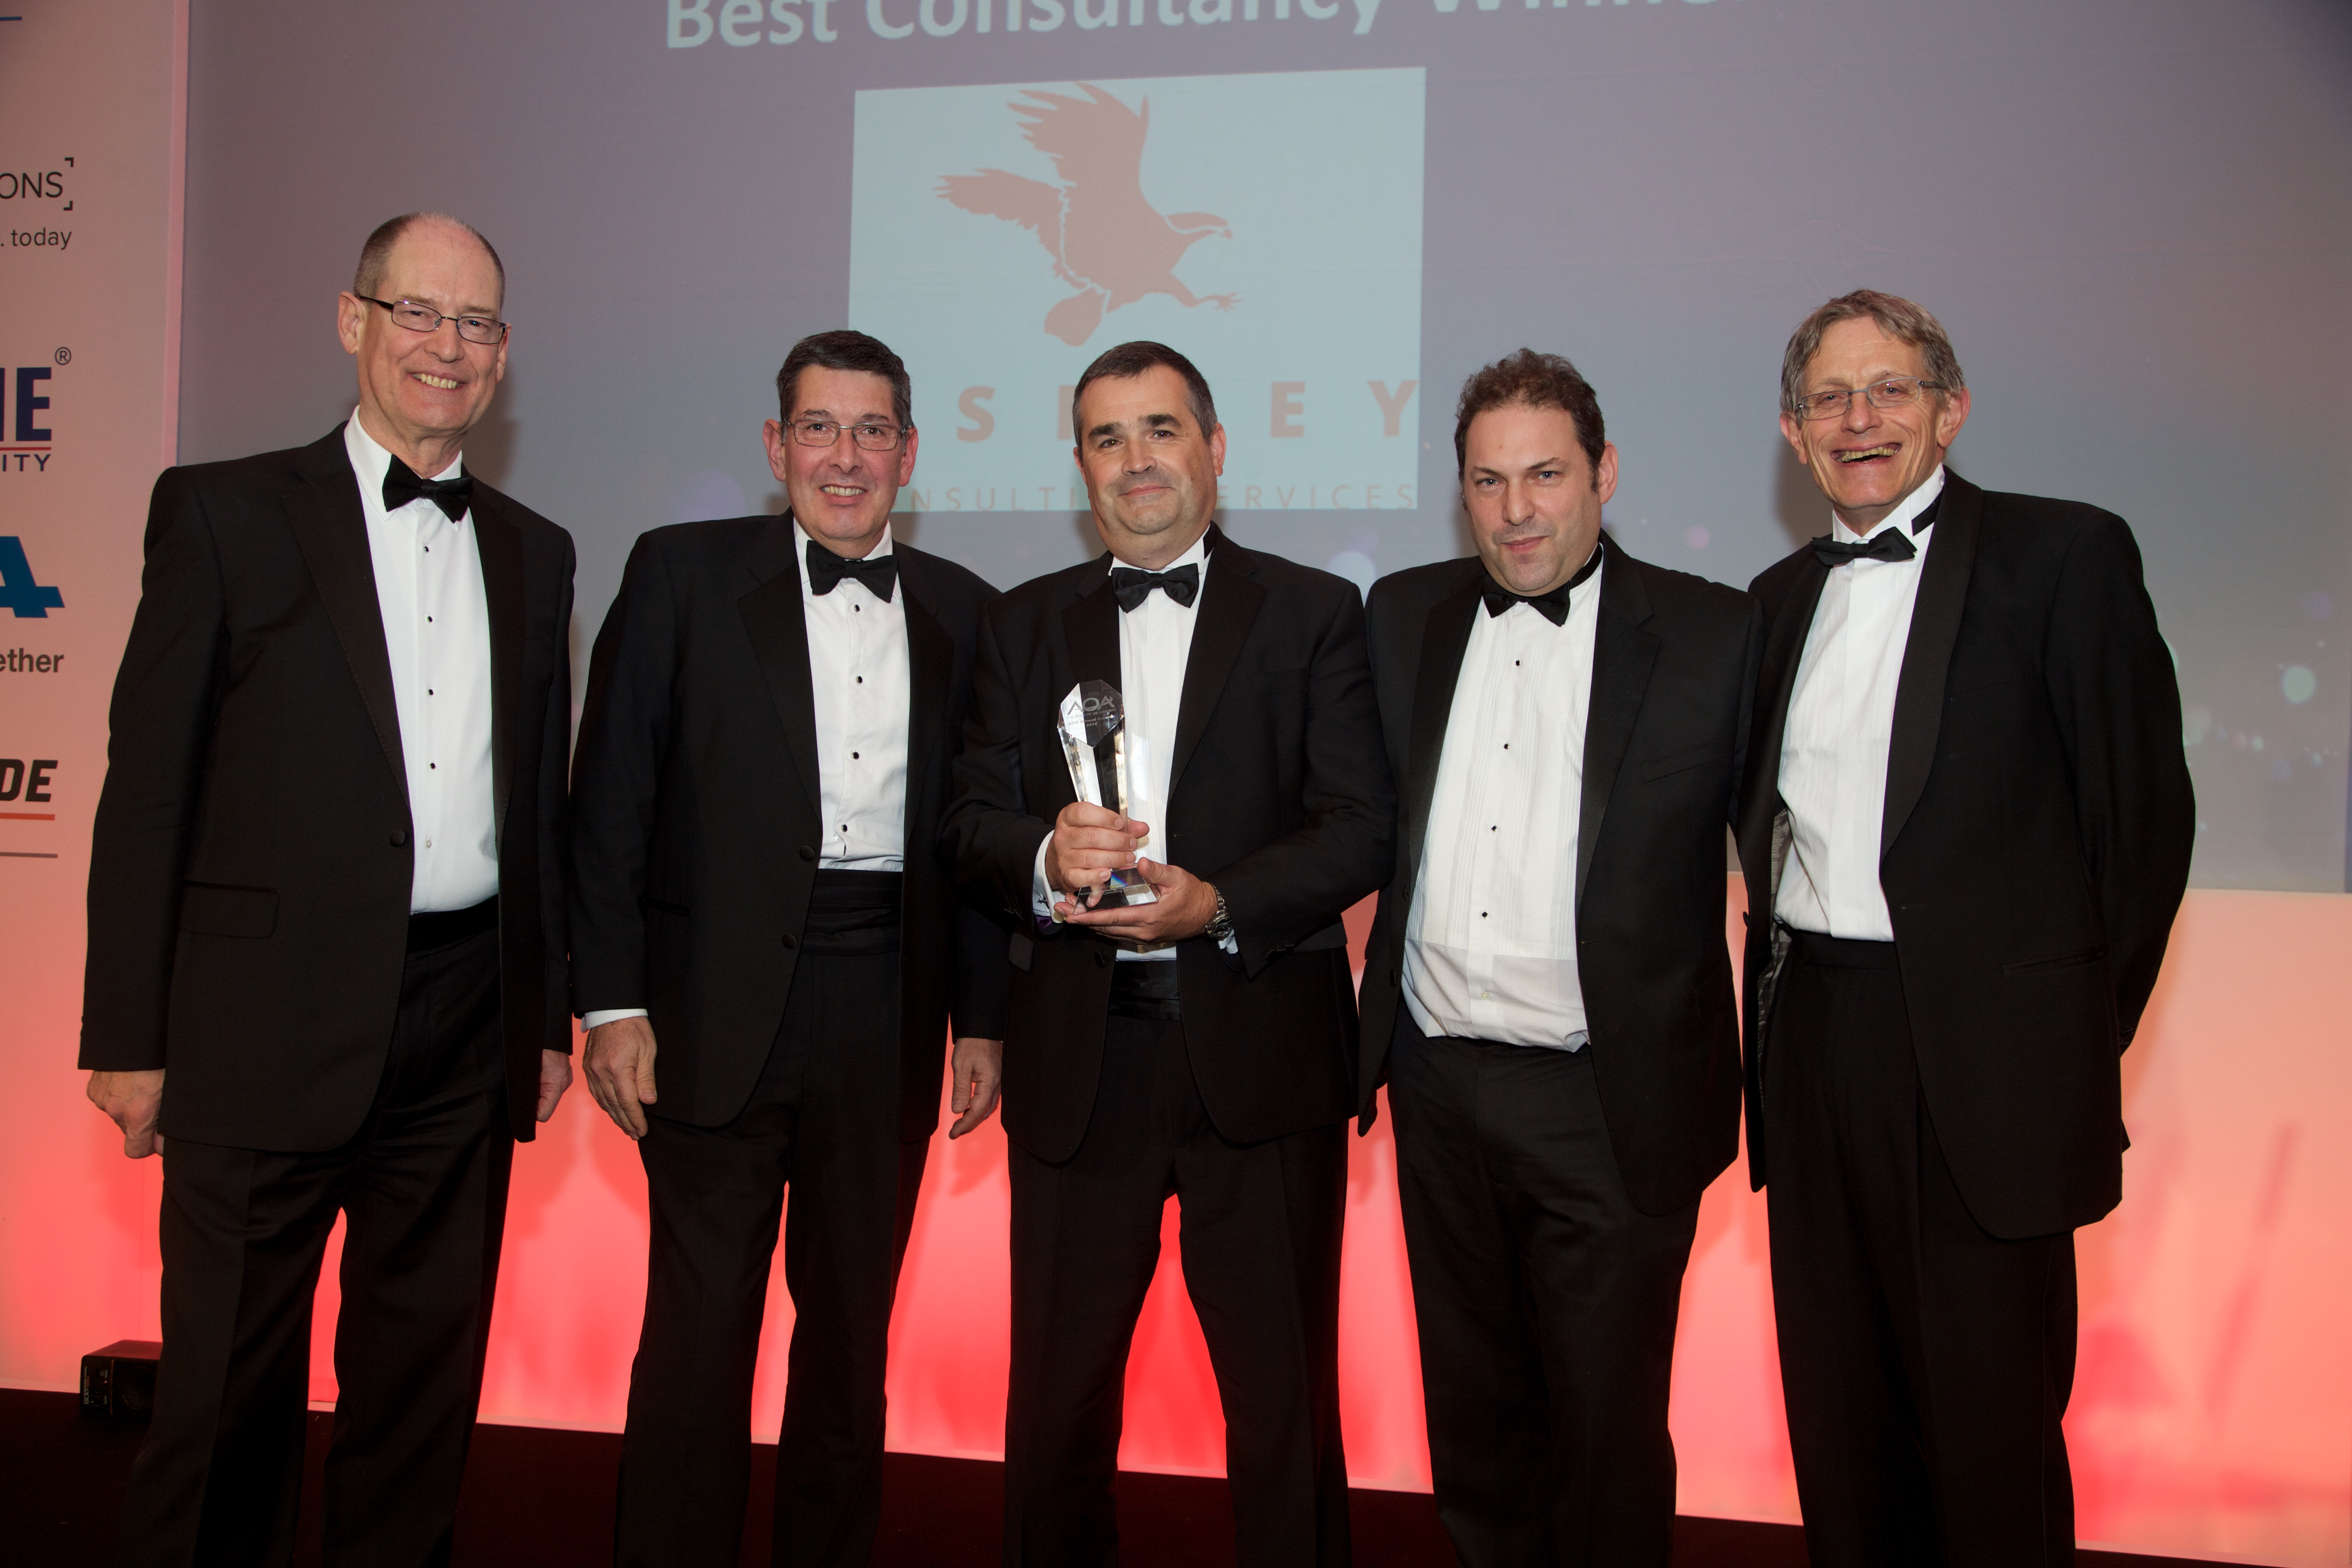 osprey-csl-wins-best-consultancy-at-the-aoa-annual-awards-2016